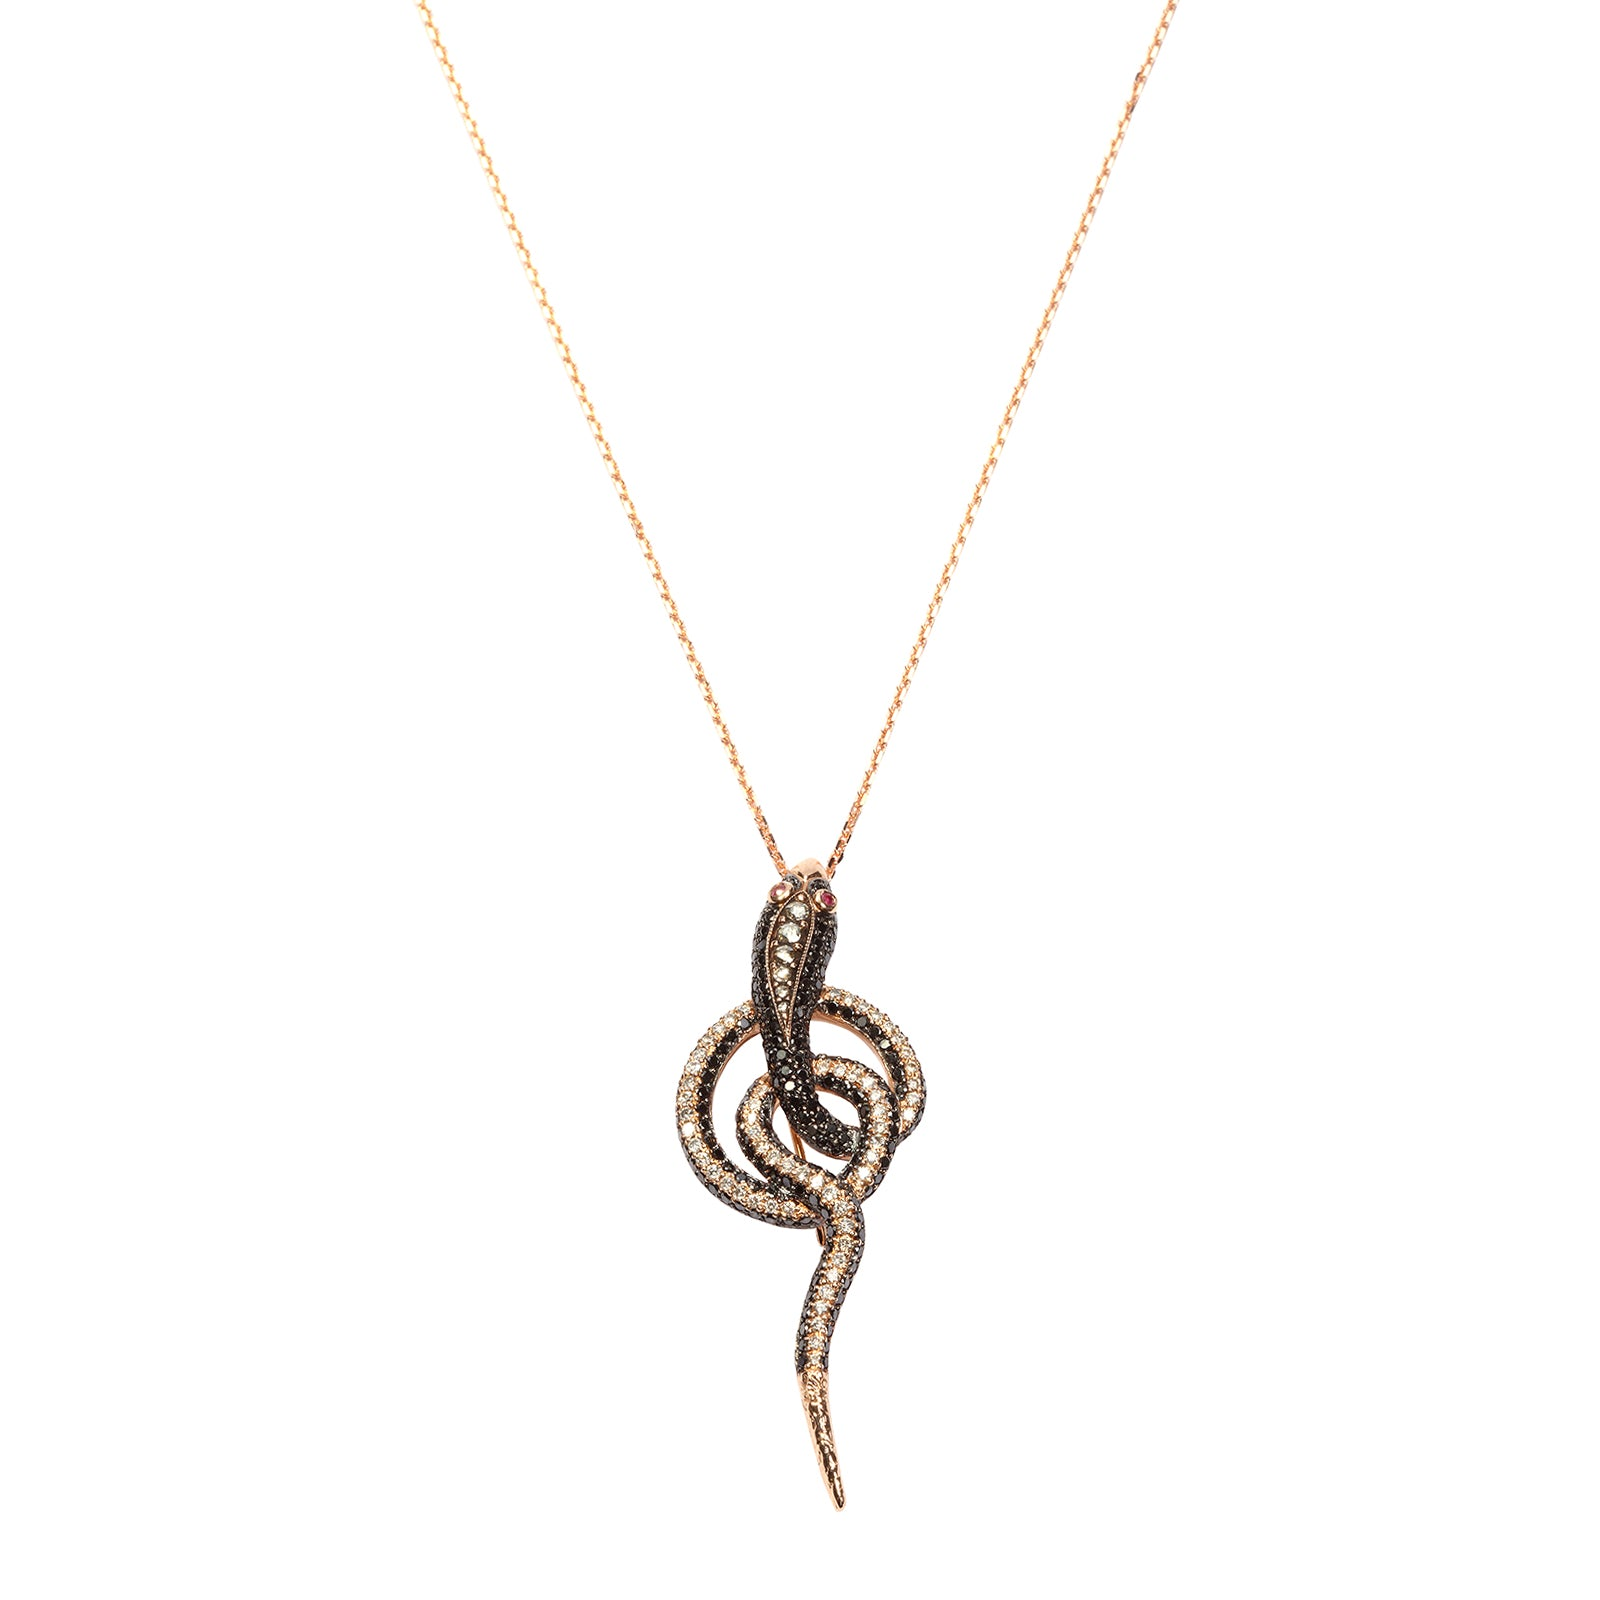 Aida Bergsen Danse Serpentine Necklace - White Diamond - Necklaces - Broken English Jewelry